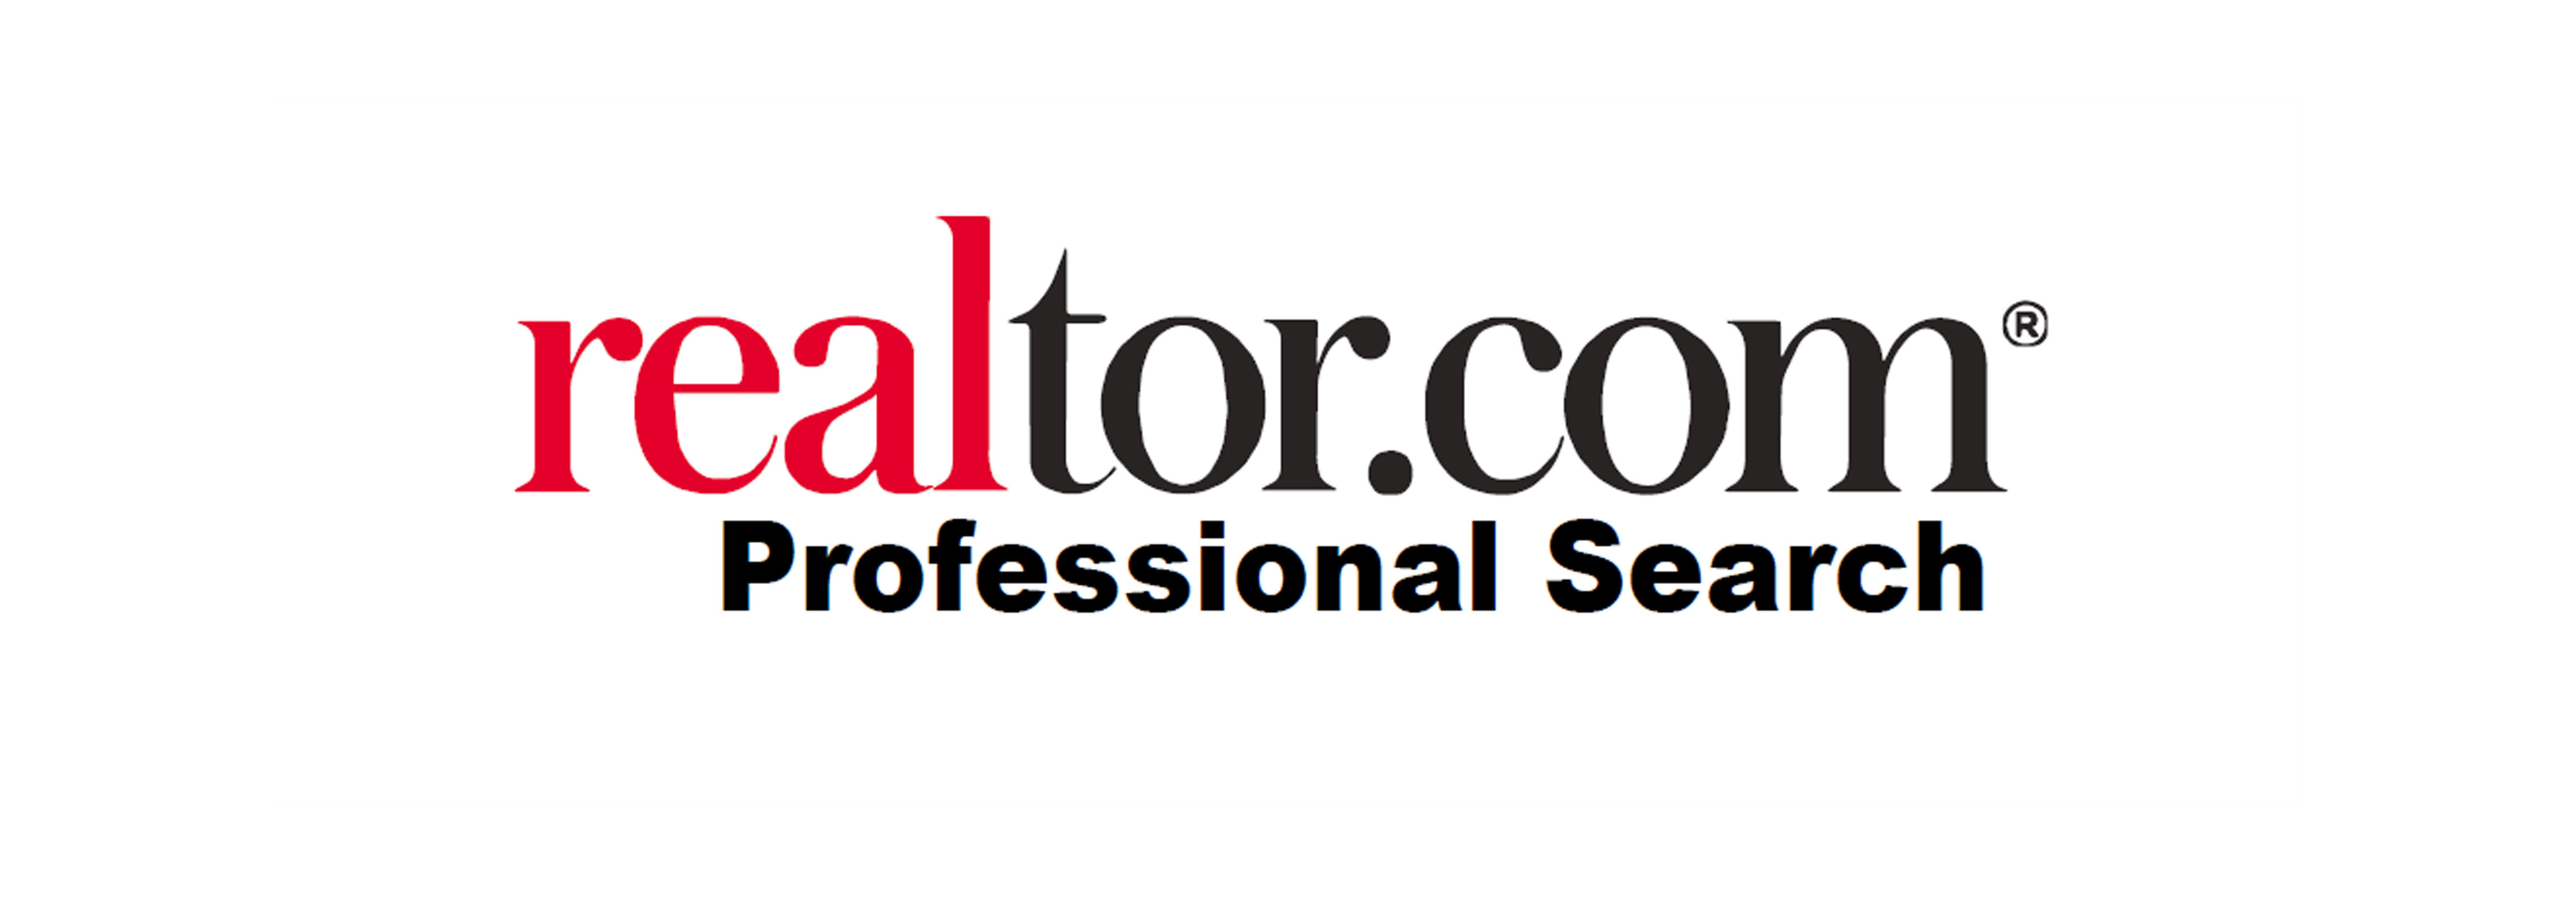 Free Training Sessions for realtor.com® Pro Search on June 14th